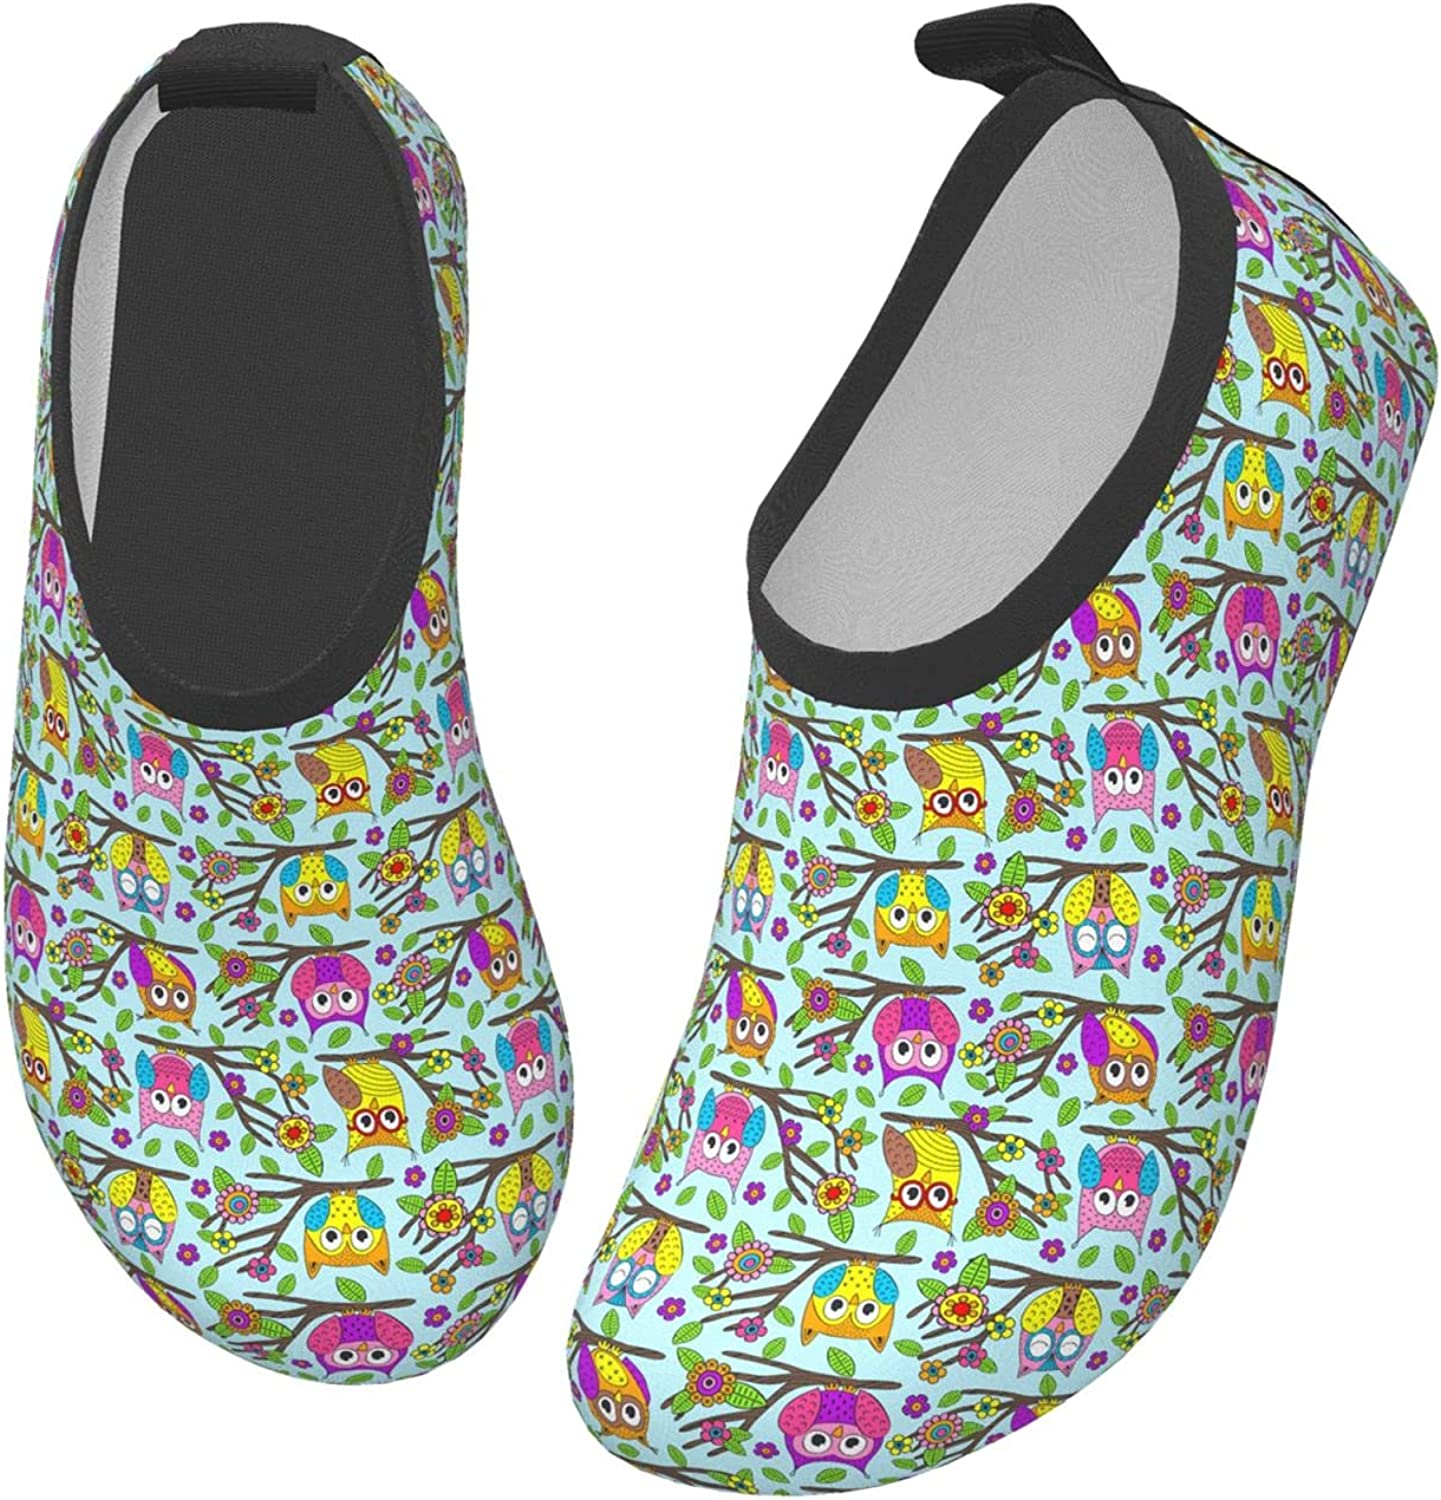 Halloween Colorful Animal Autumn Owl Children's Water Shoes Feel Barefoot for Swimming Beach Boating Surfing Yoga